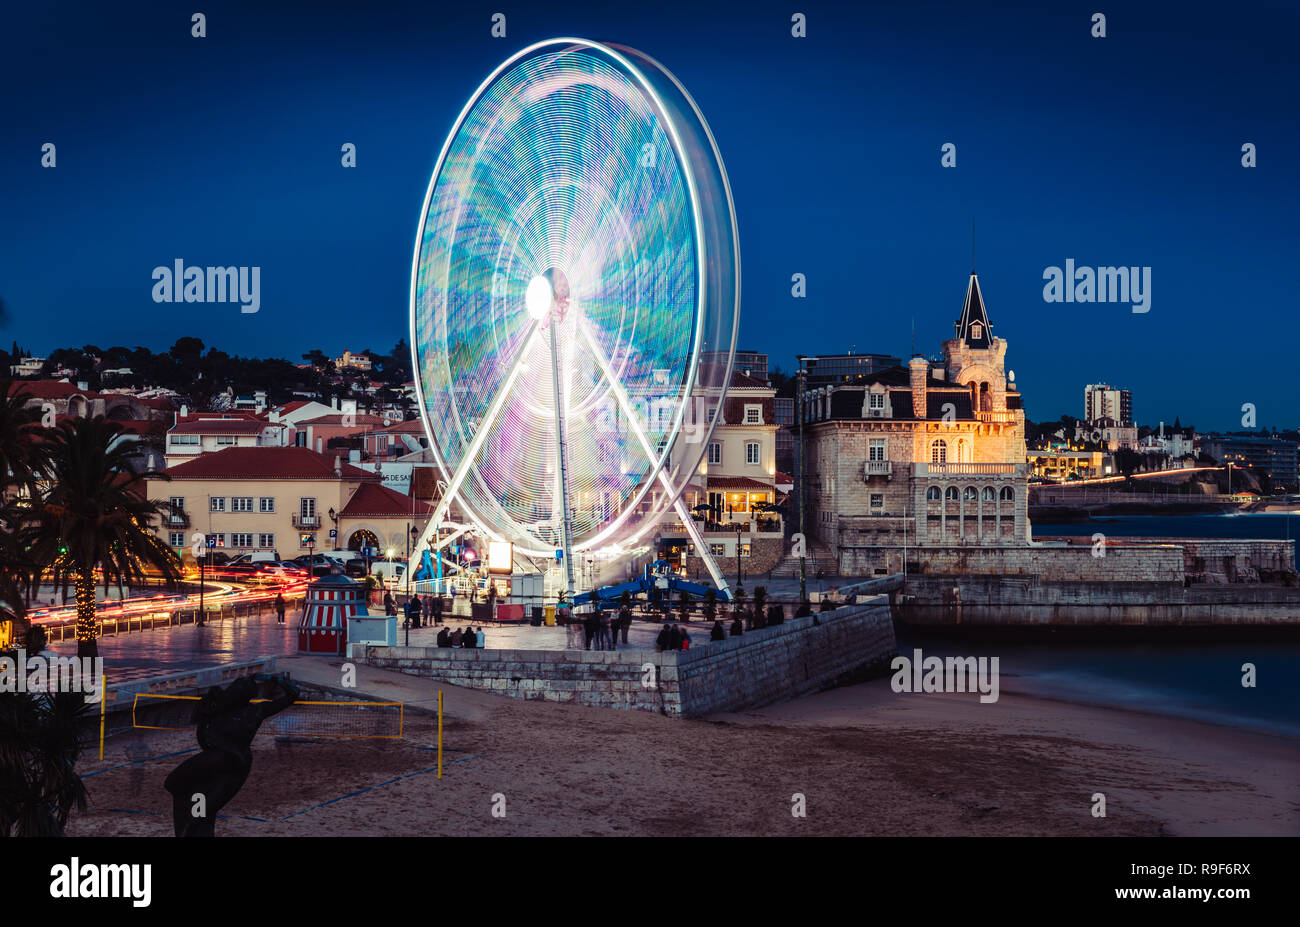 Long exposure of giant ferris wheel entertaining locals and tourists at Cascais Beach during the Christmas Season at night - Stock Image